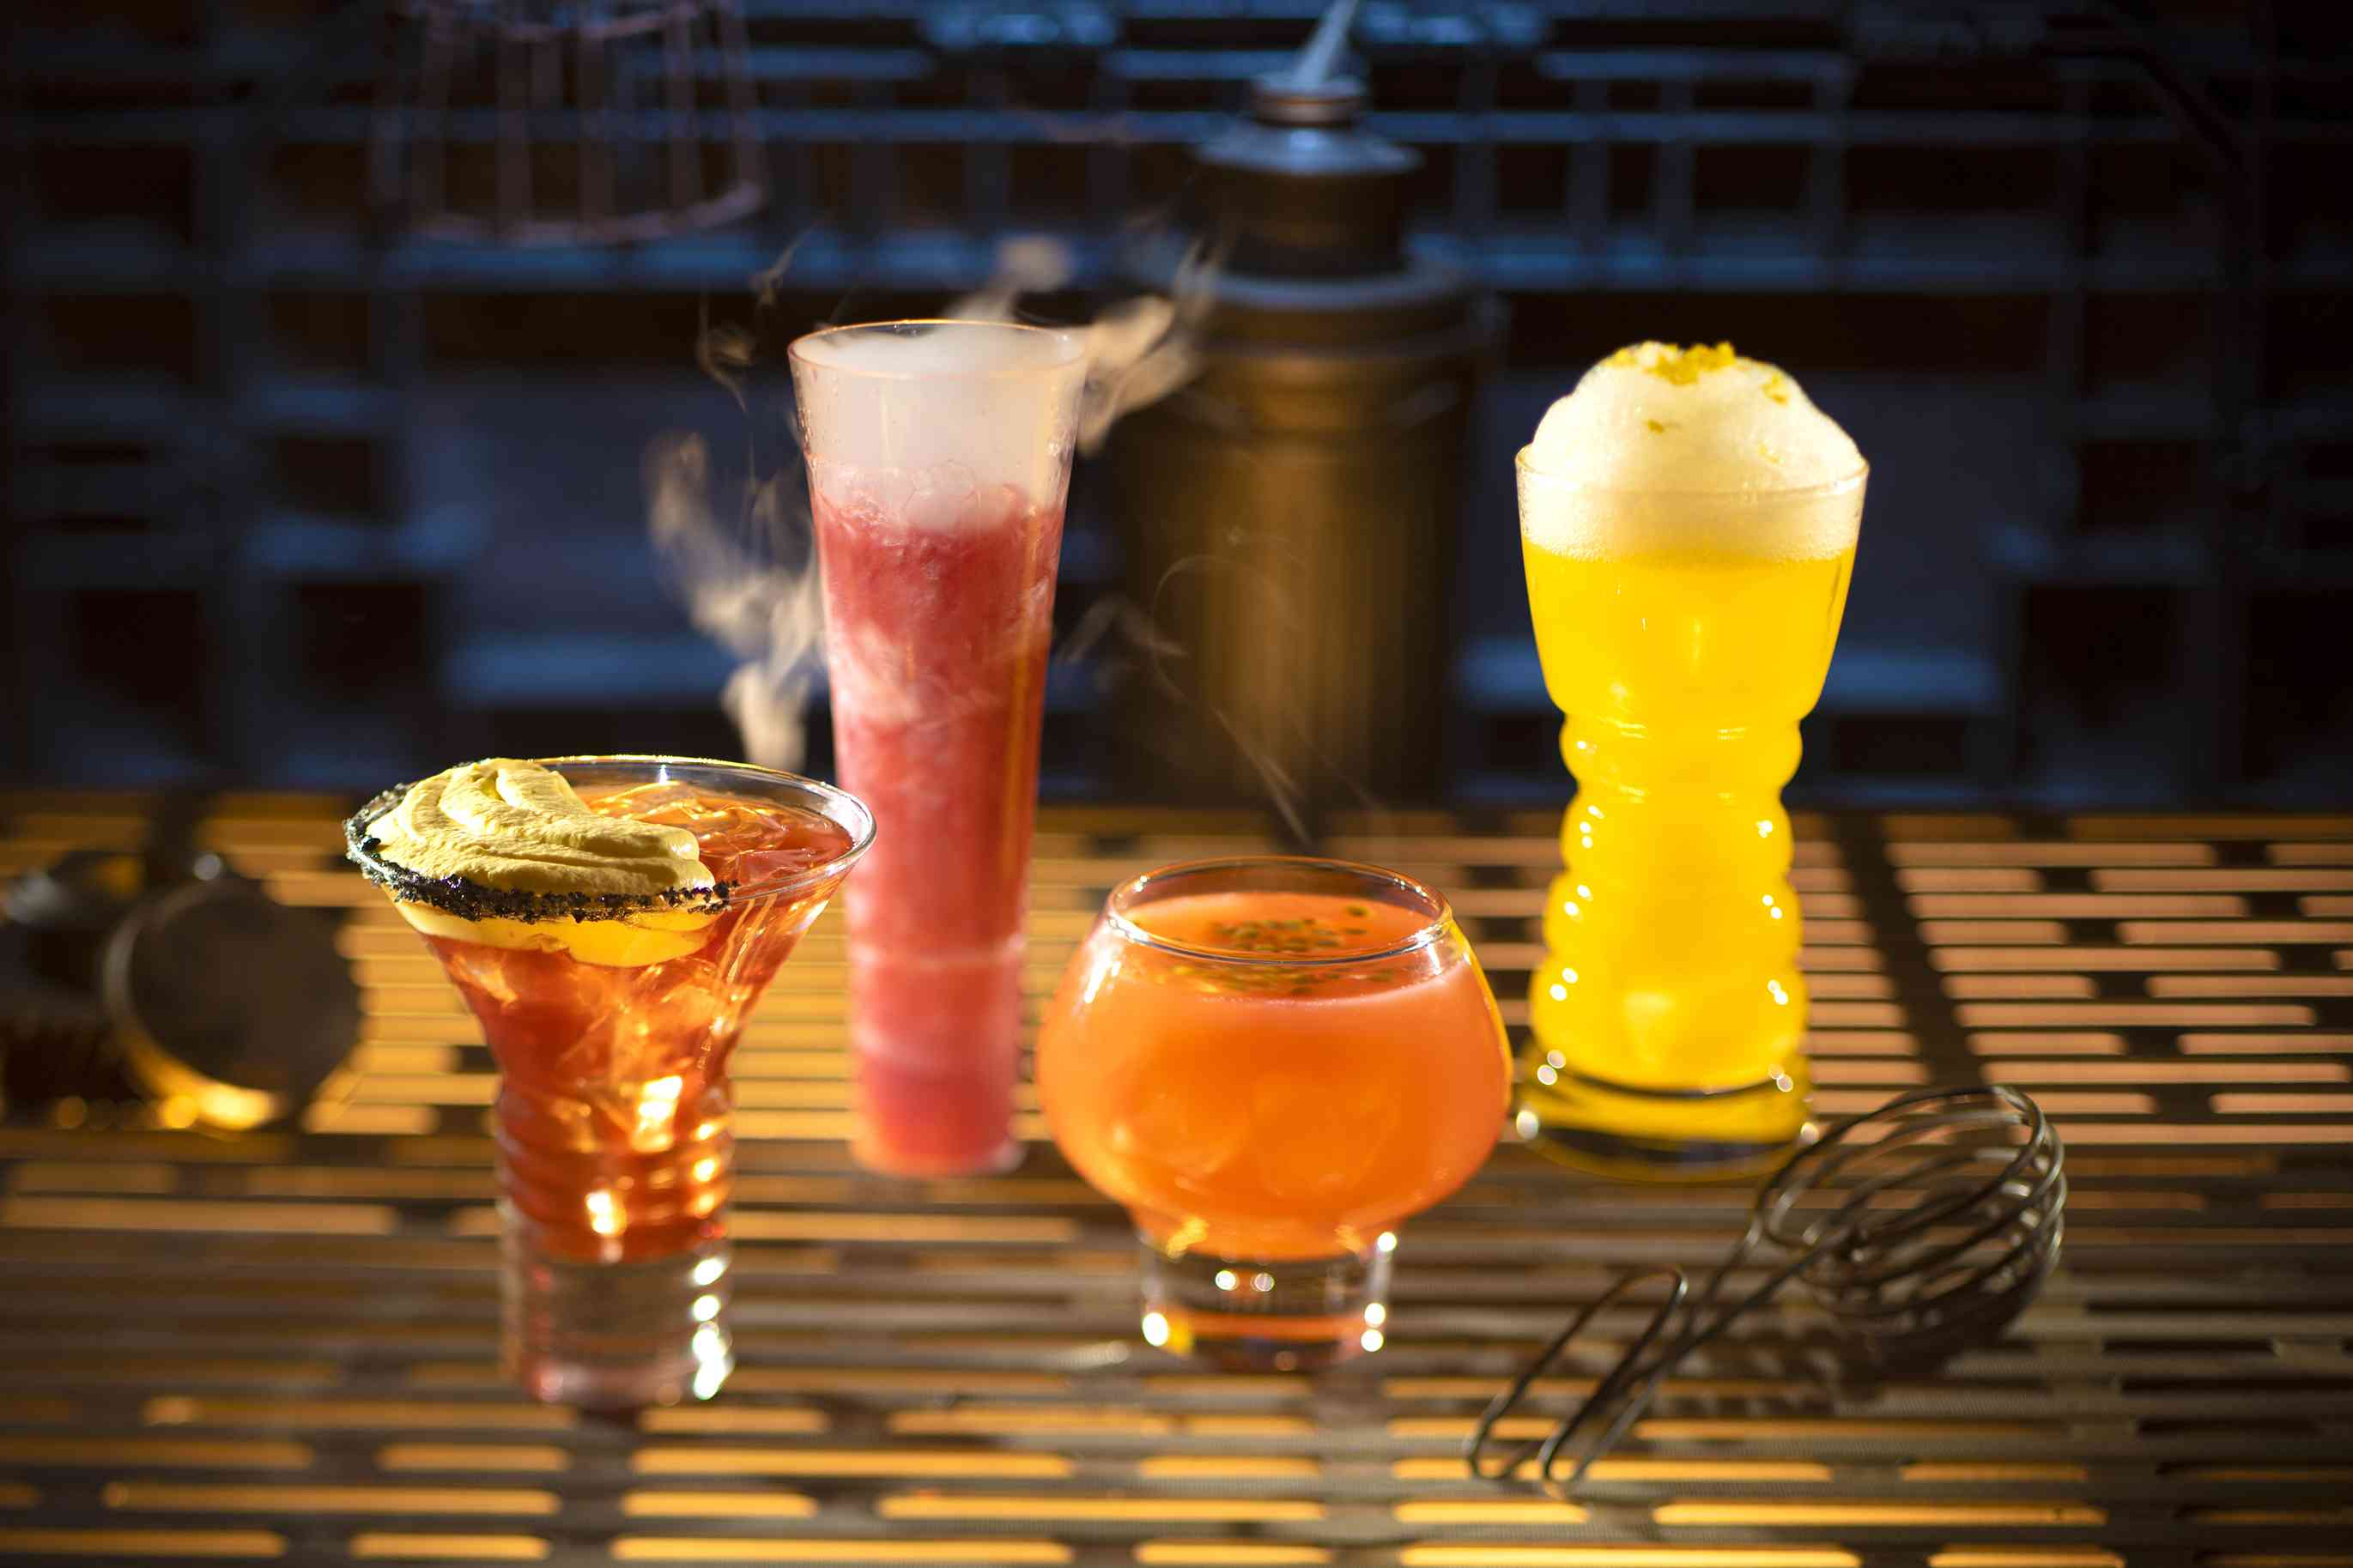 Oga's Cantina drinks at Galaxy's Edge